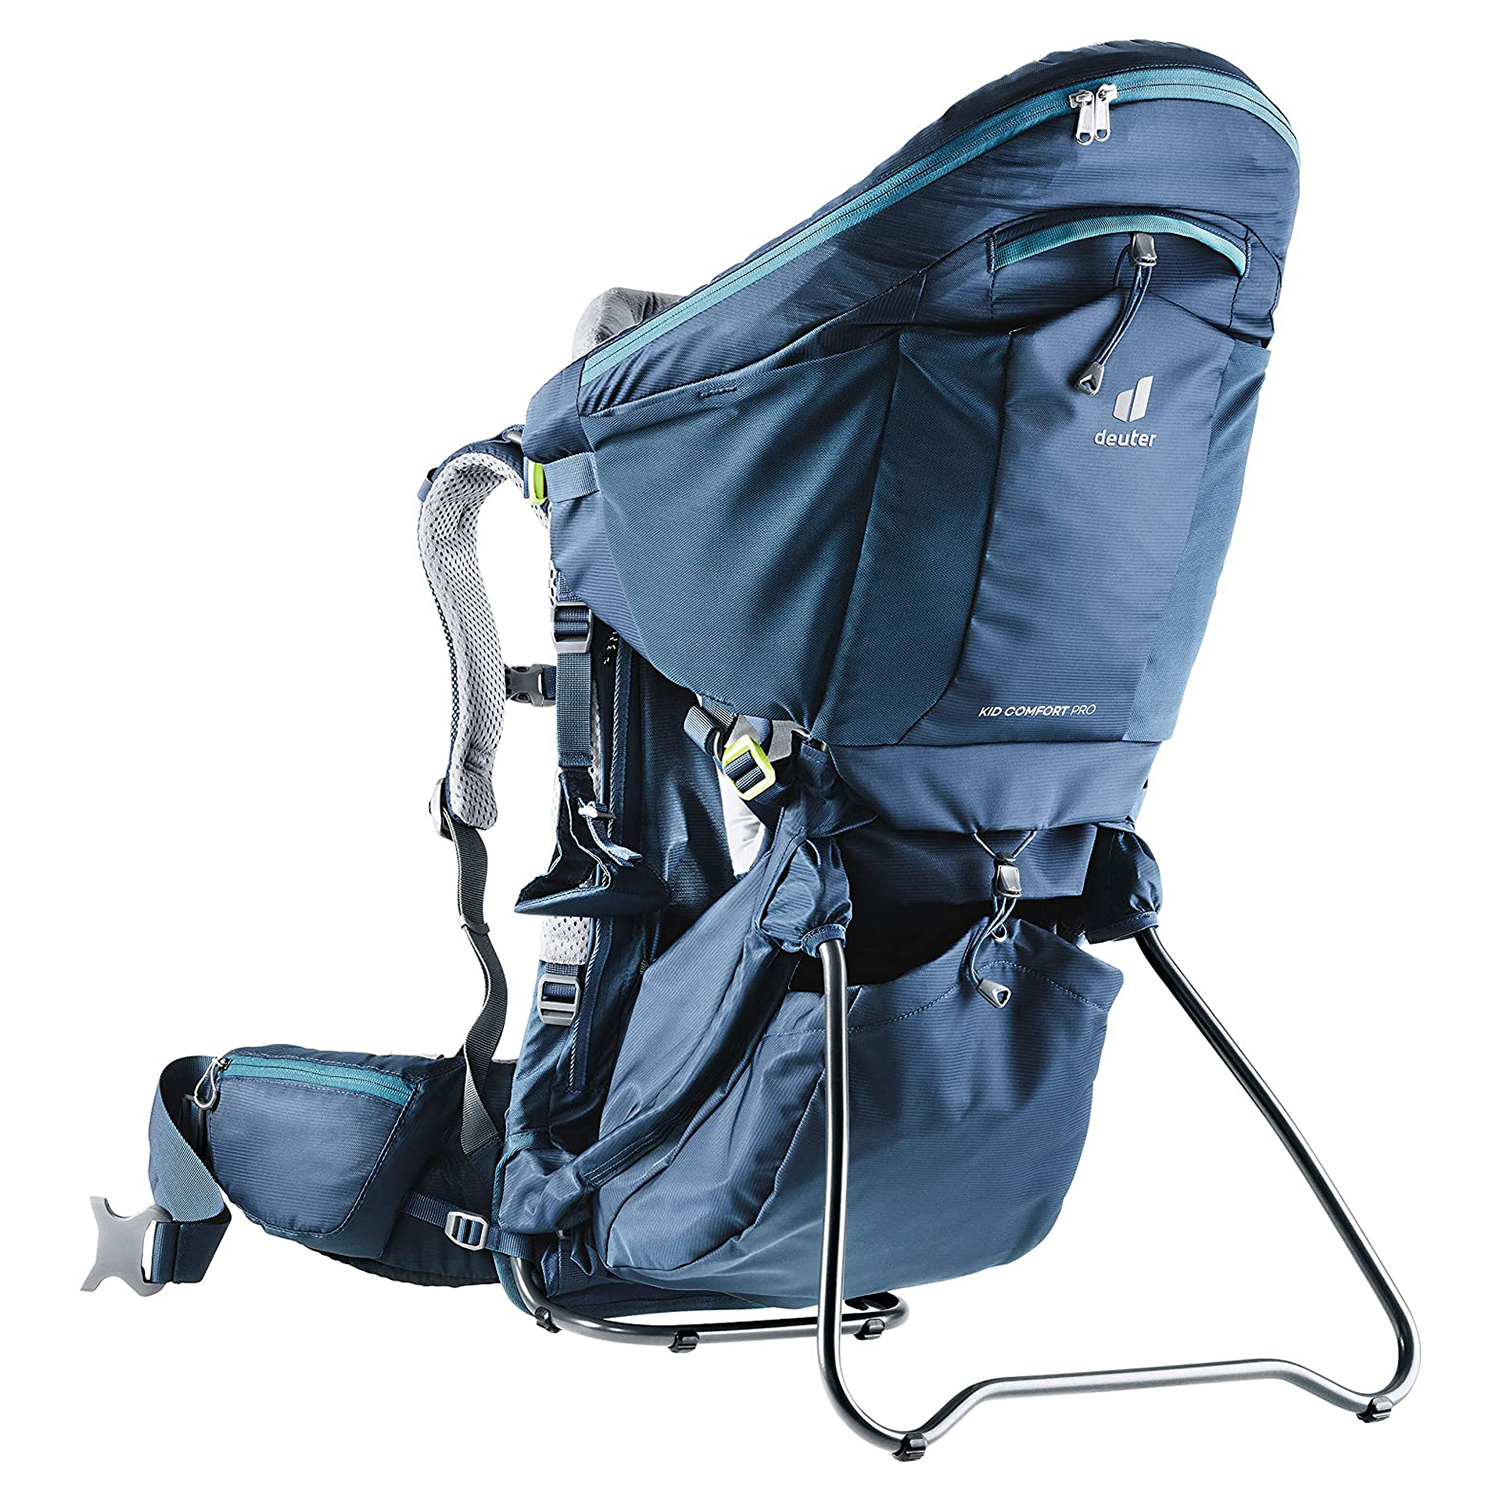 Hiking Baby Carrier With the Most Bells and Whistles: Deuter Kid Comfort Pro Carrier